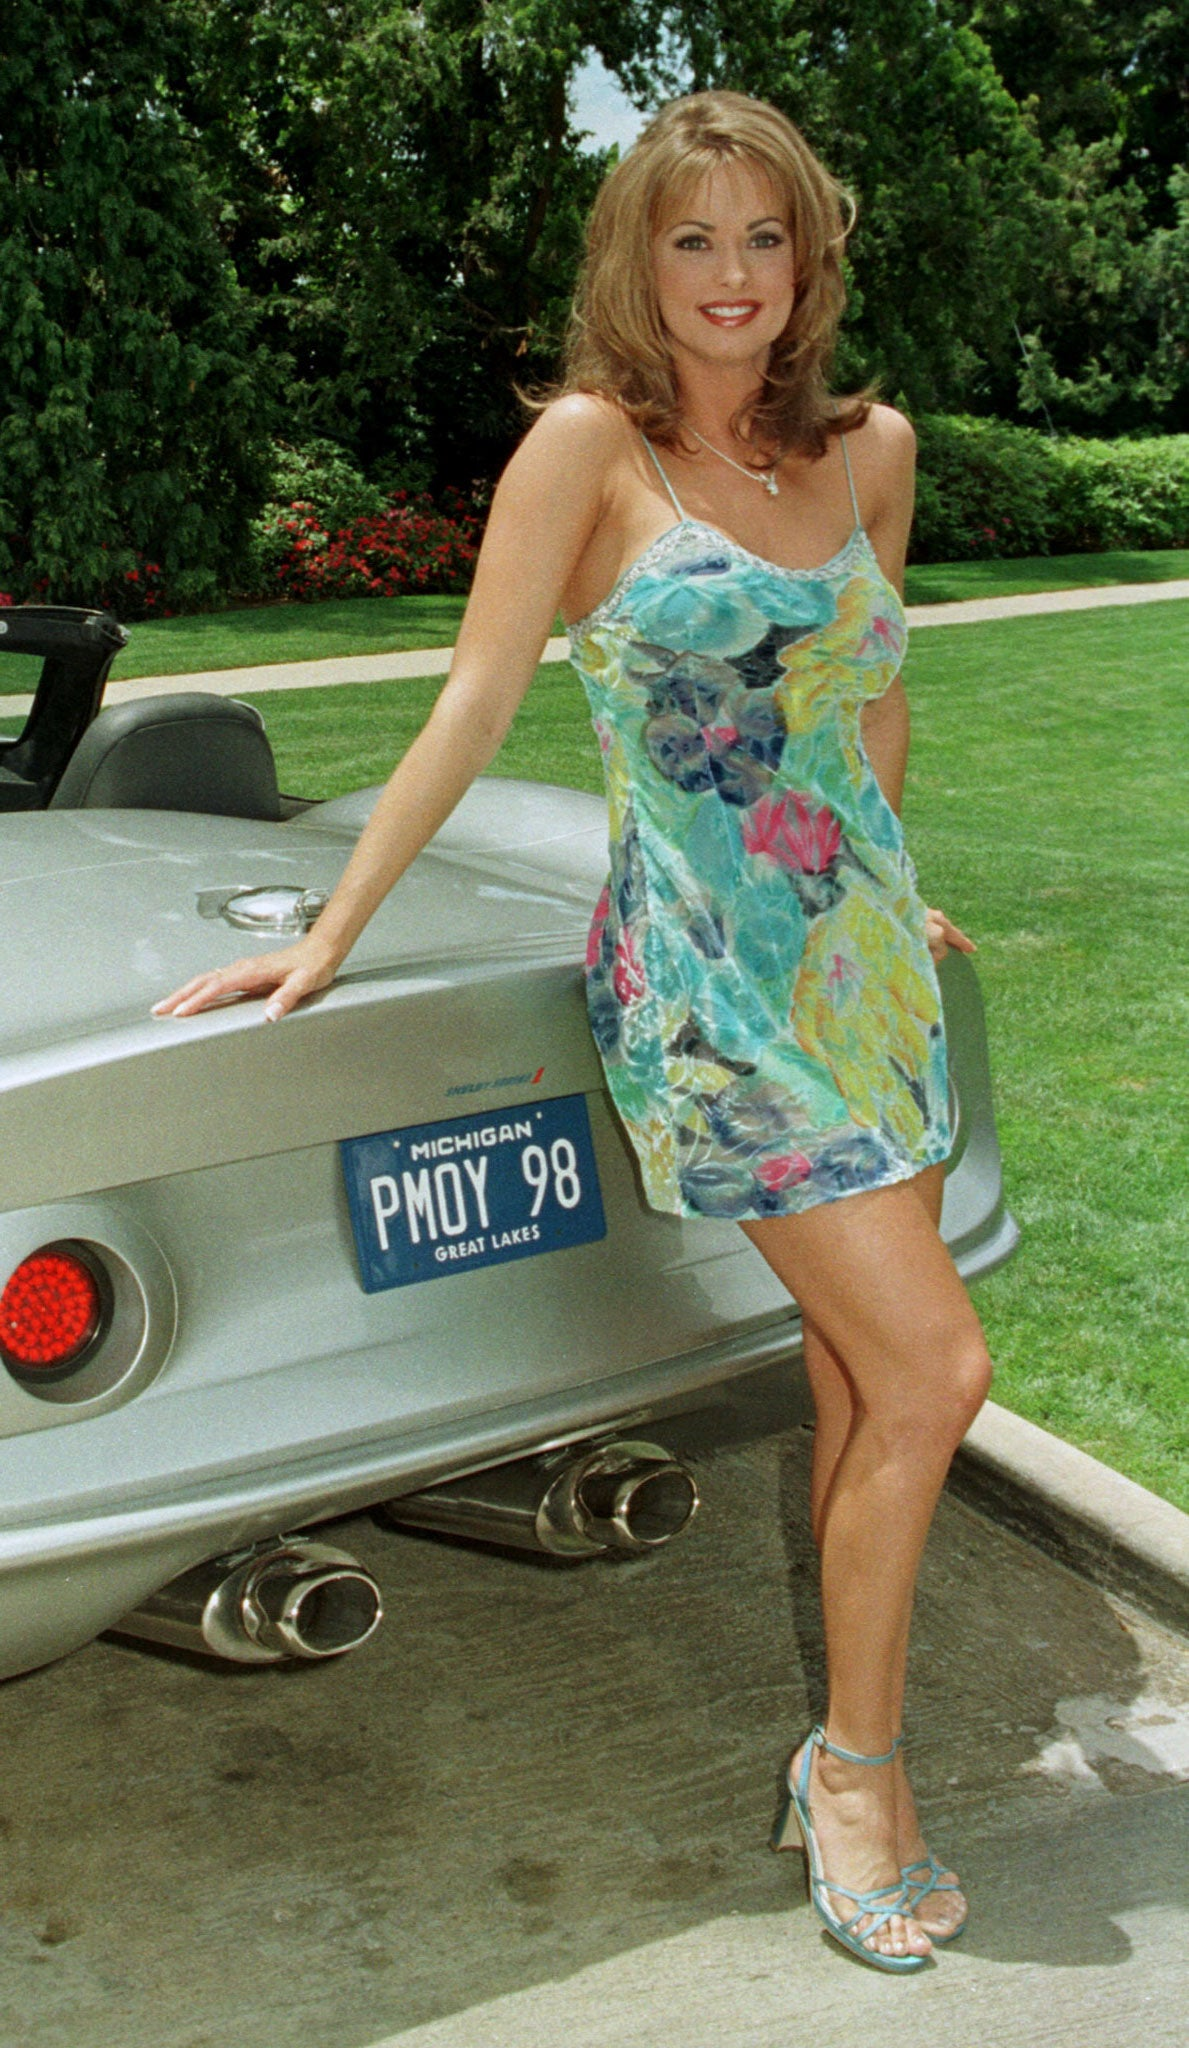 Karen McDougal at the Playboy Mansion in Beverly Hills in 1998.